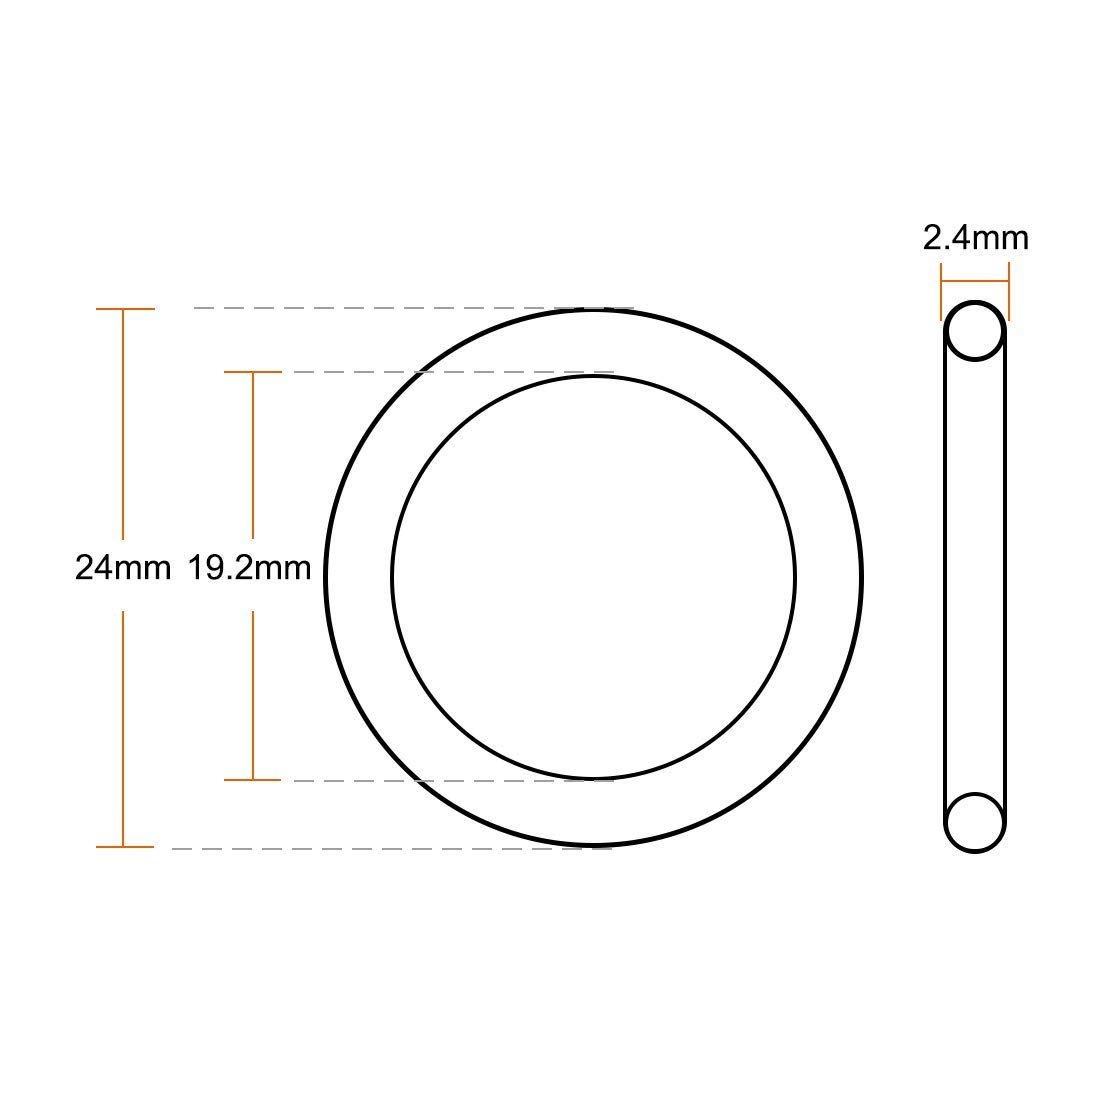 O-Rings of Fluoride Rubber 26 mm OD 21.2 mm ID 2.4 mm Width Seal Gasket Brown 20 Pieces